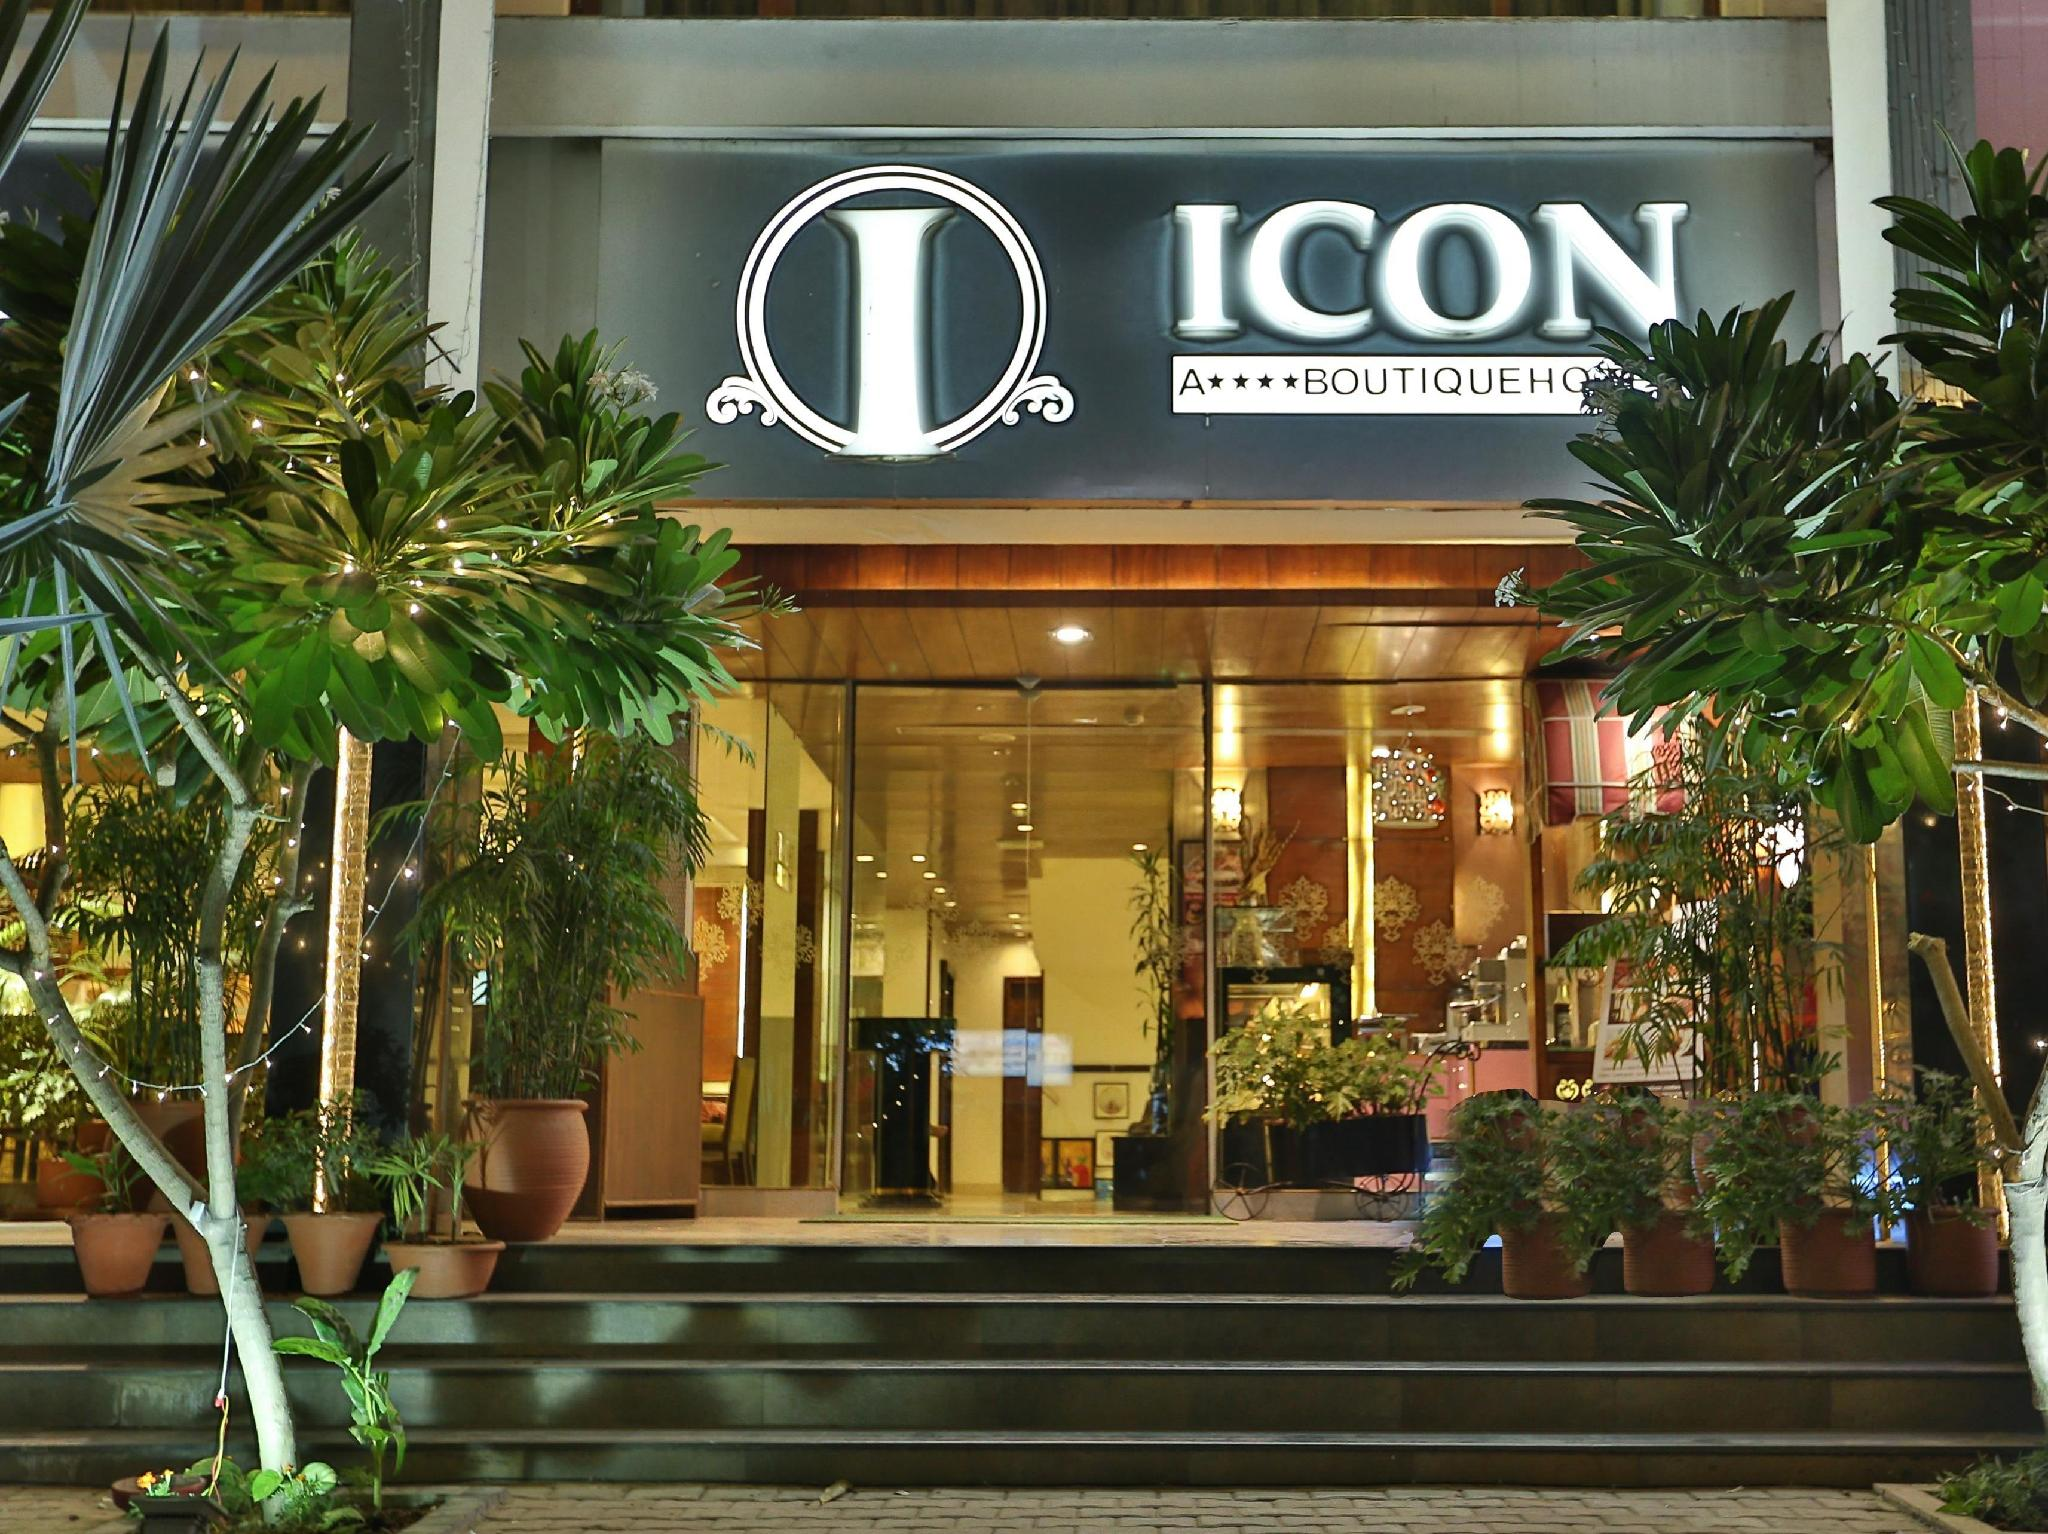 Icon- A Boutique Hotel - Chandigarh